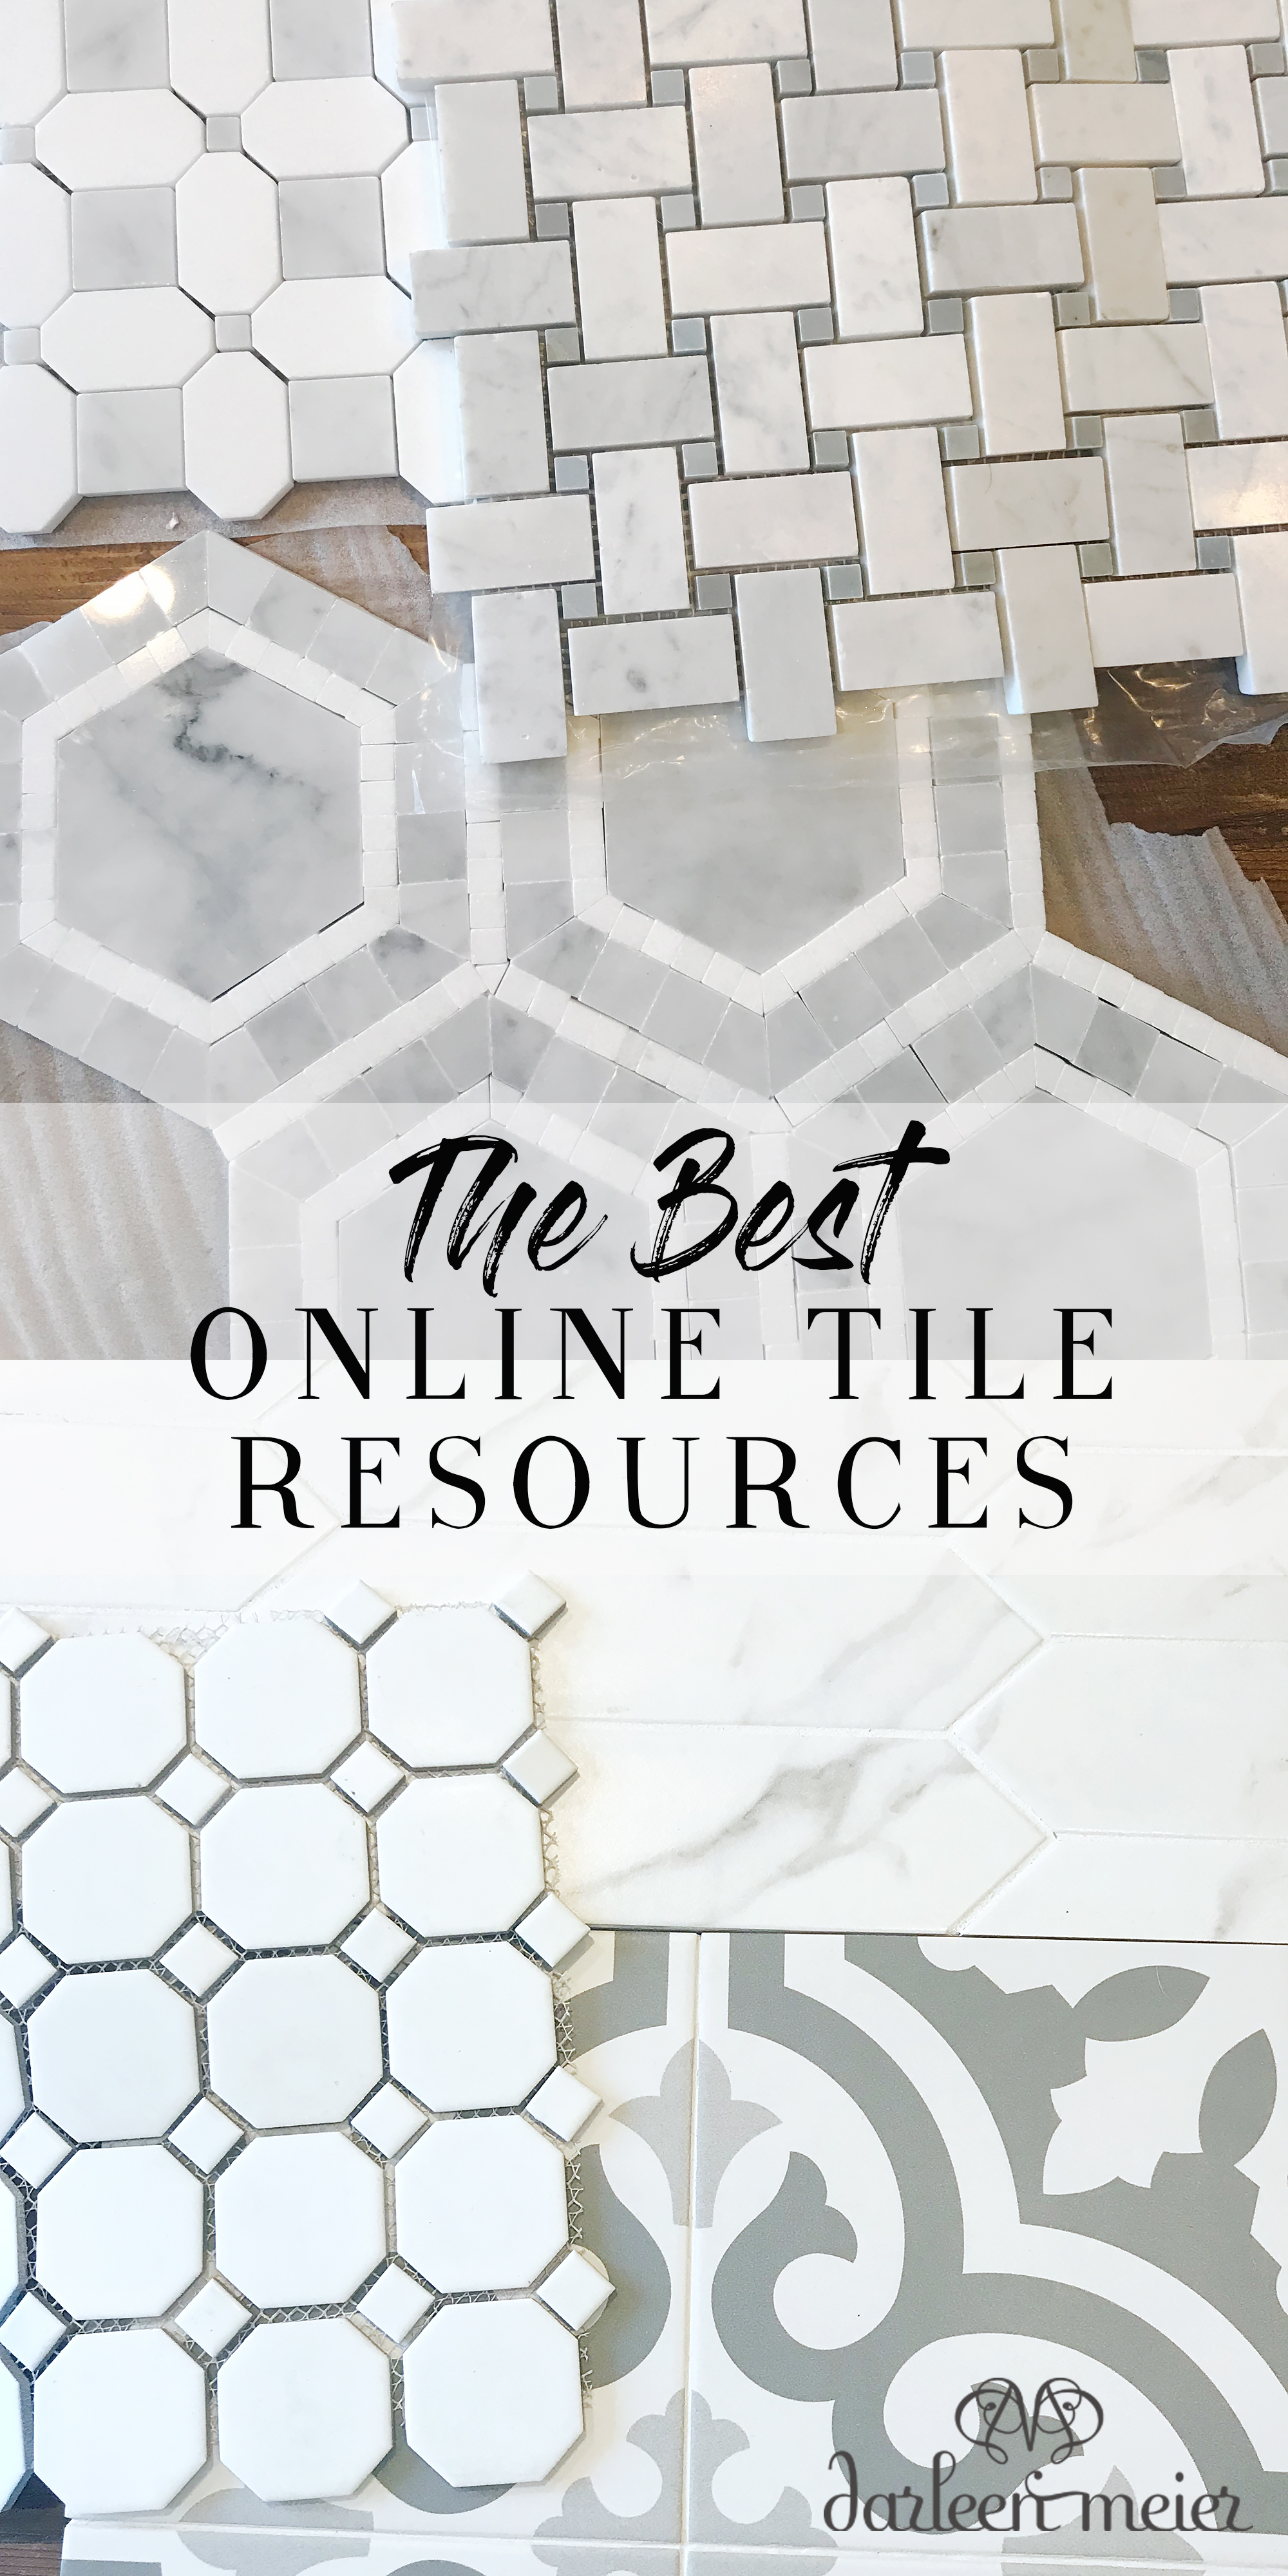 The Best Online Tile Resources || Darling Darleen #darlingdarleen #tileguide #bestof